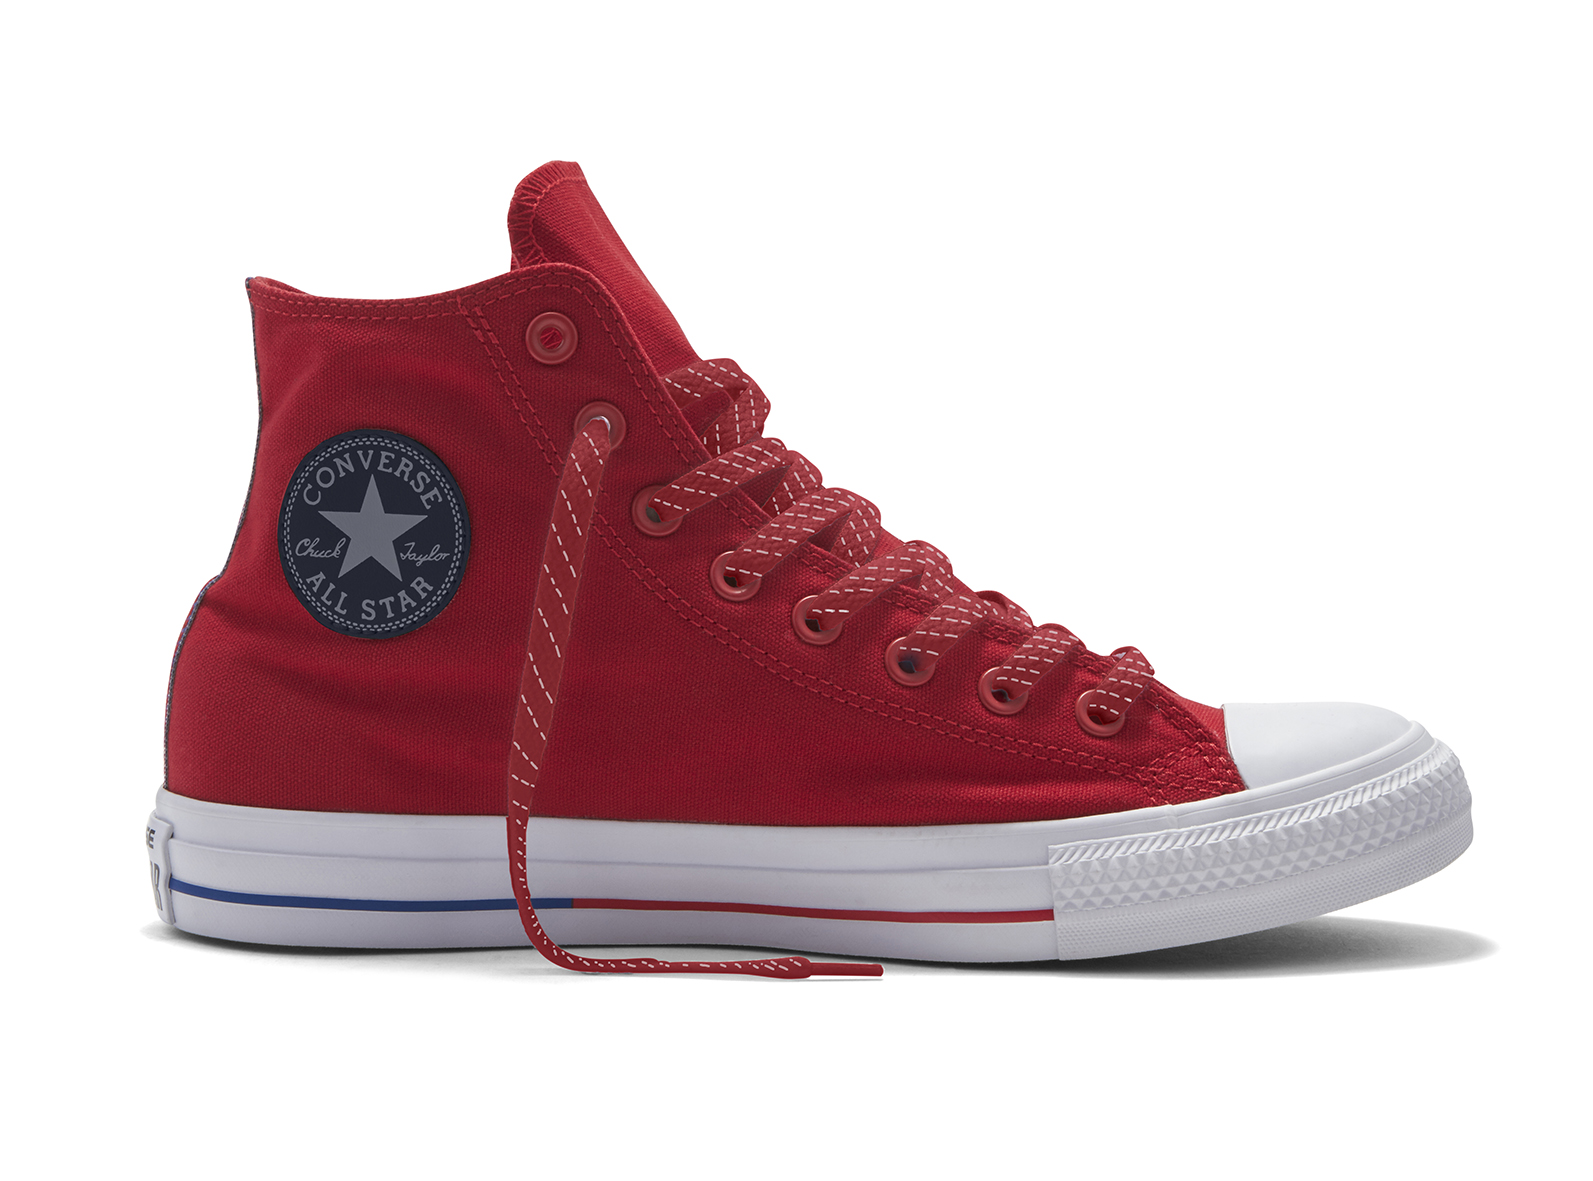 HOMBRE_CT AS SHIELD CANVAS HI Signal Red_Whit_269 NUEVOS SOLES.jpg